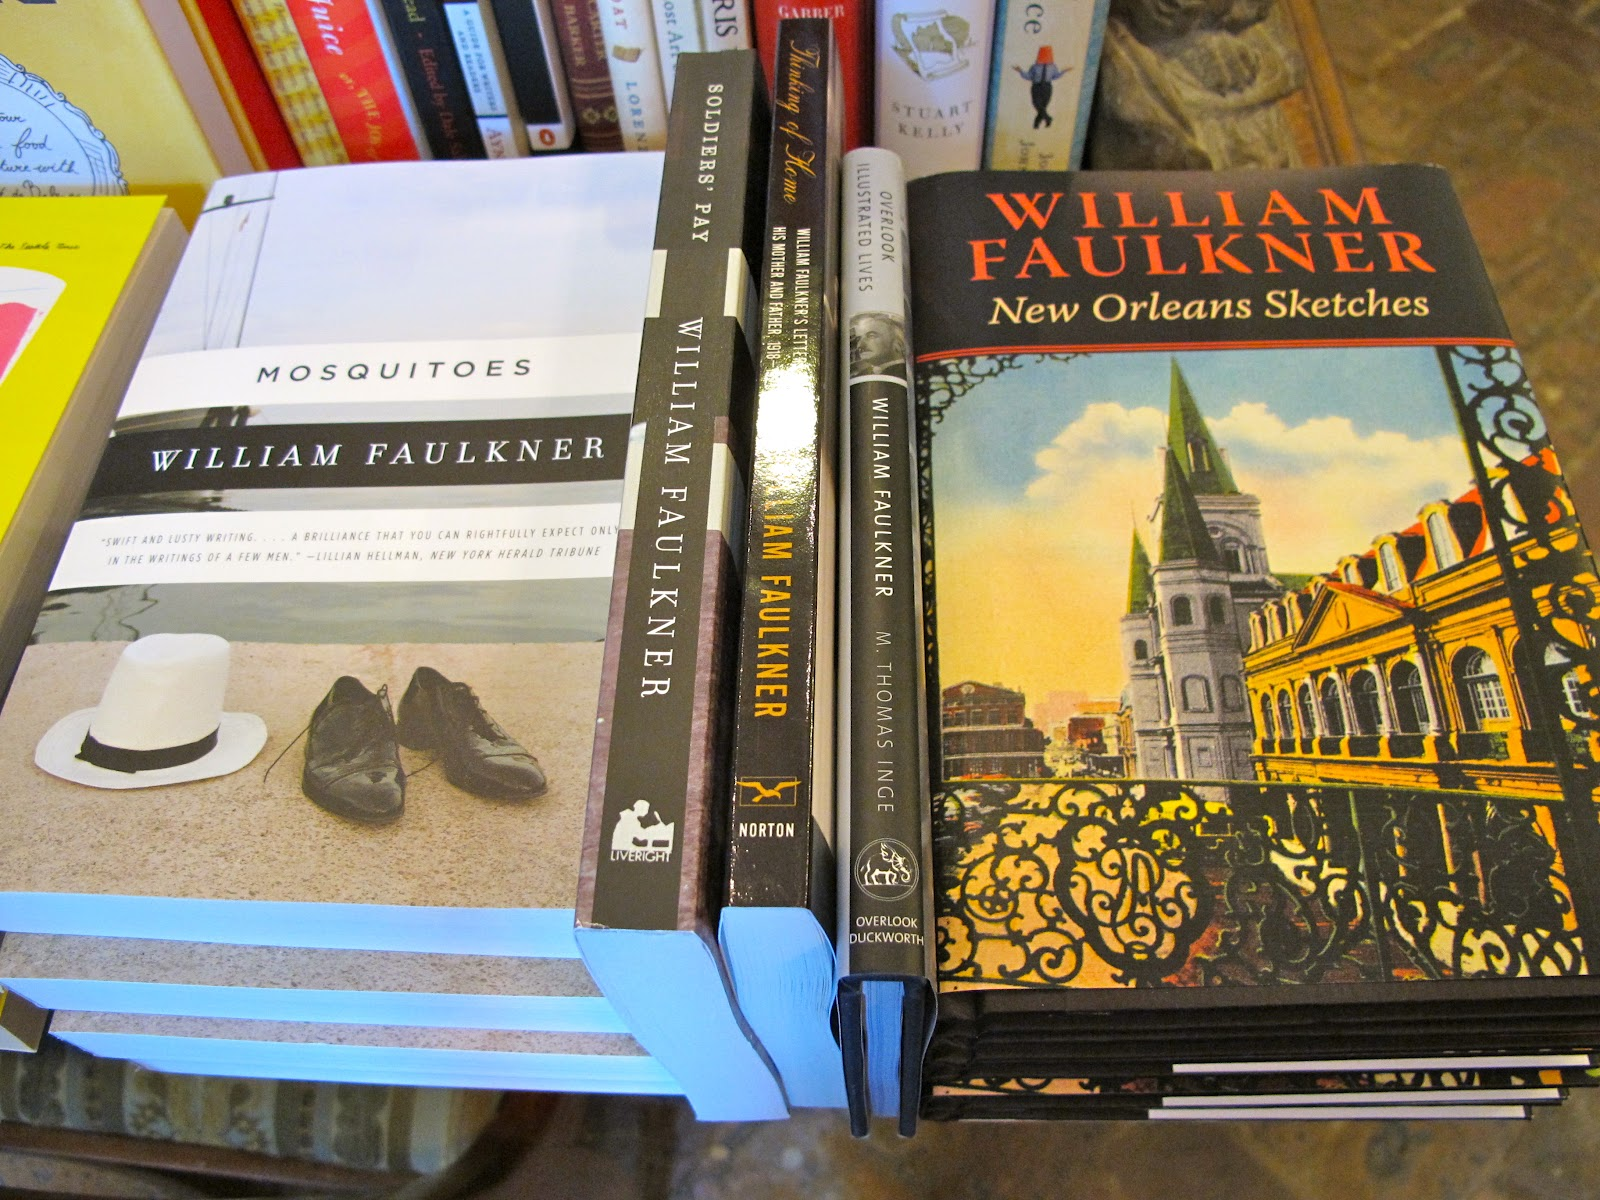 Some of the literary works of William Faulkner at the Faulkner House Books